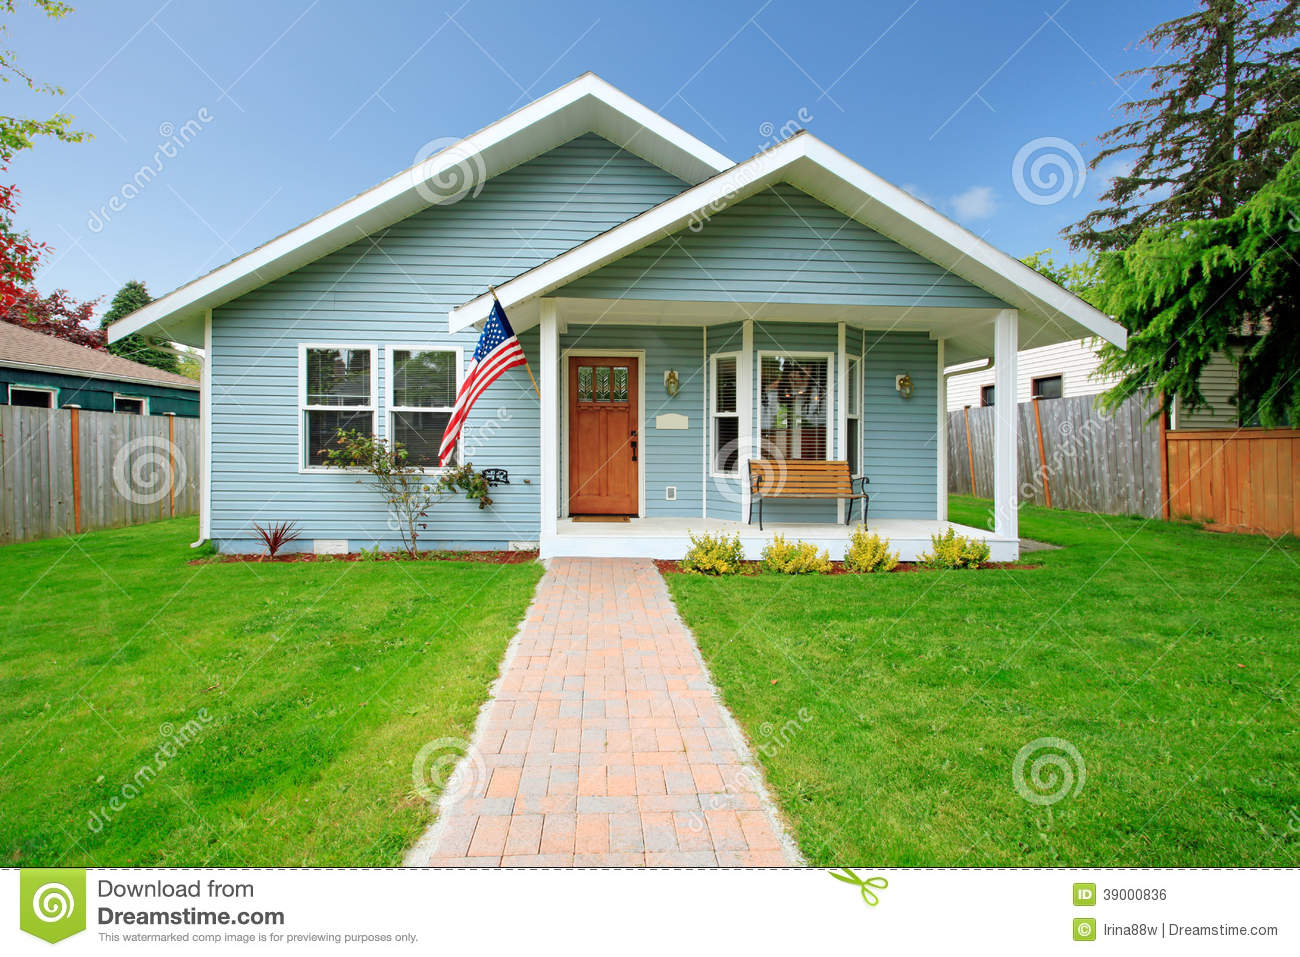 Classic american house stock photo image 39000836 for American classic house mouse